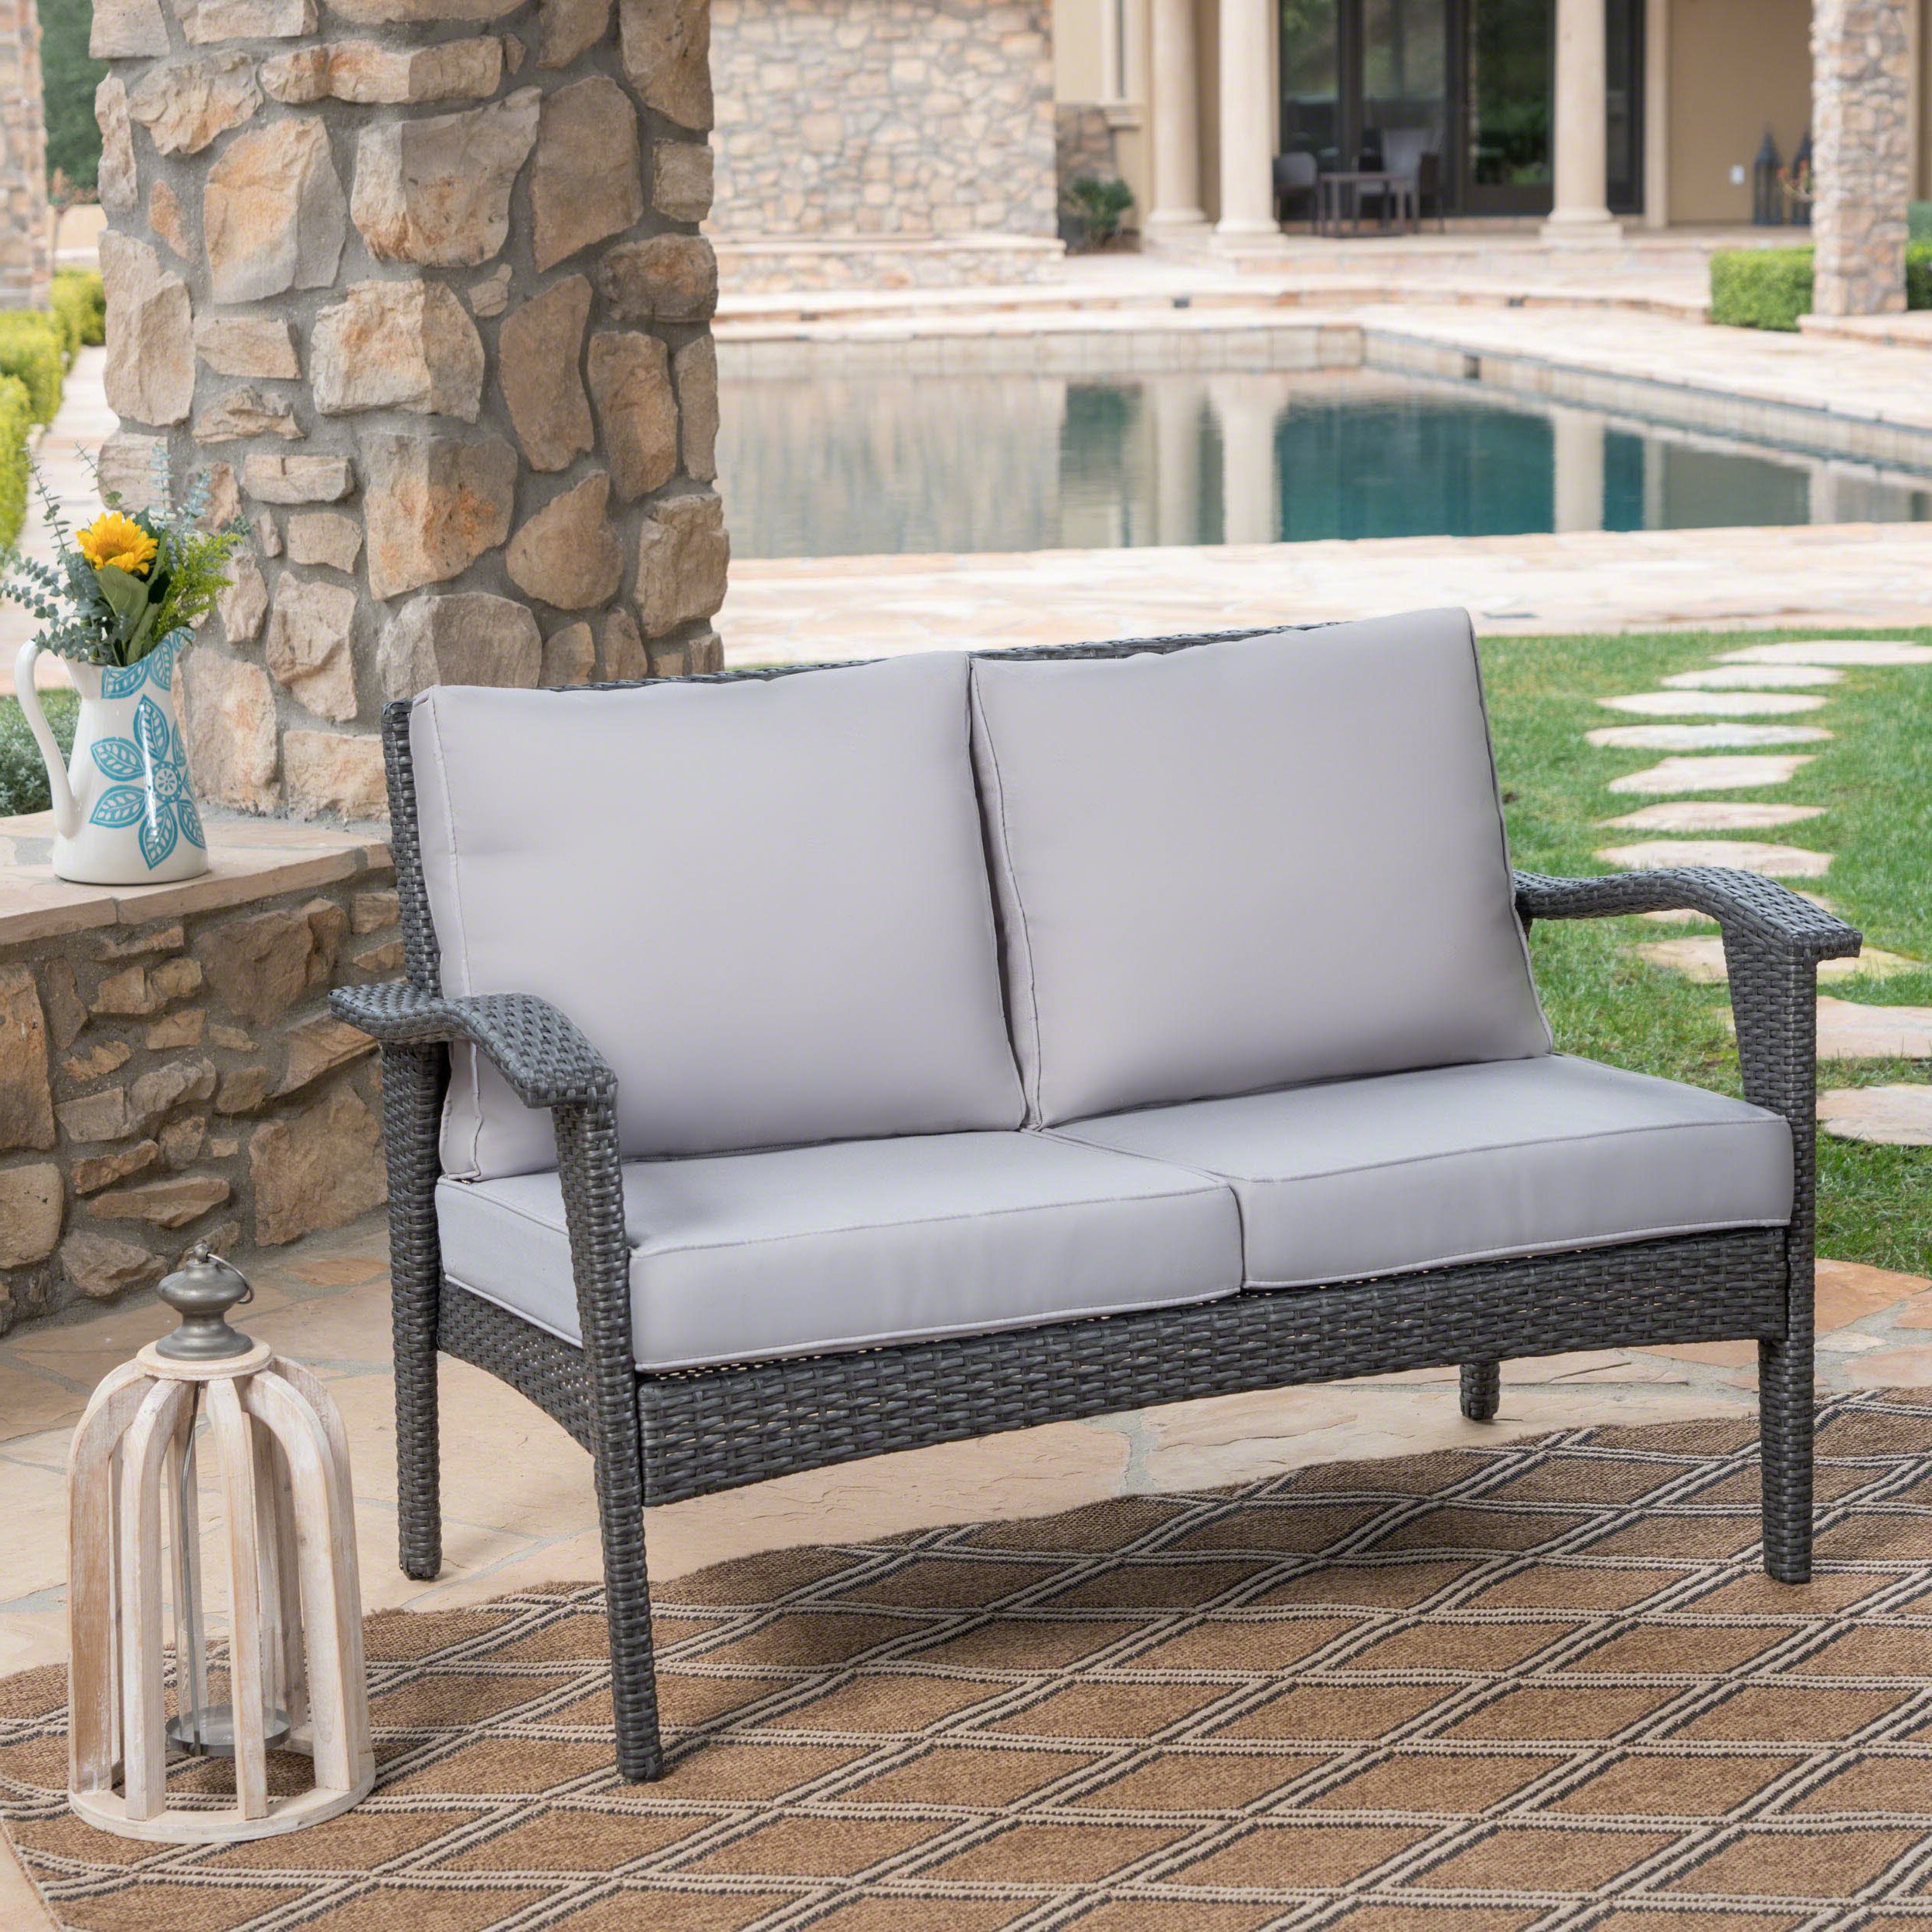 Alburg Loveseats With Cushions With Well Known Hagler Outdoor Loveseat With Cushions (View 10 of 25)